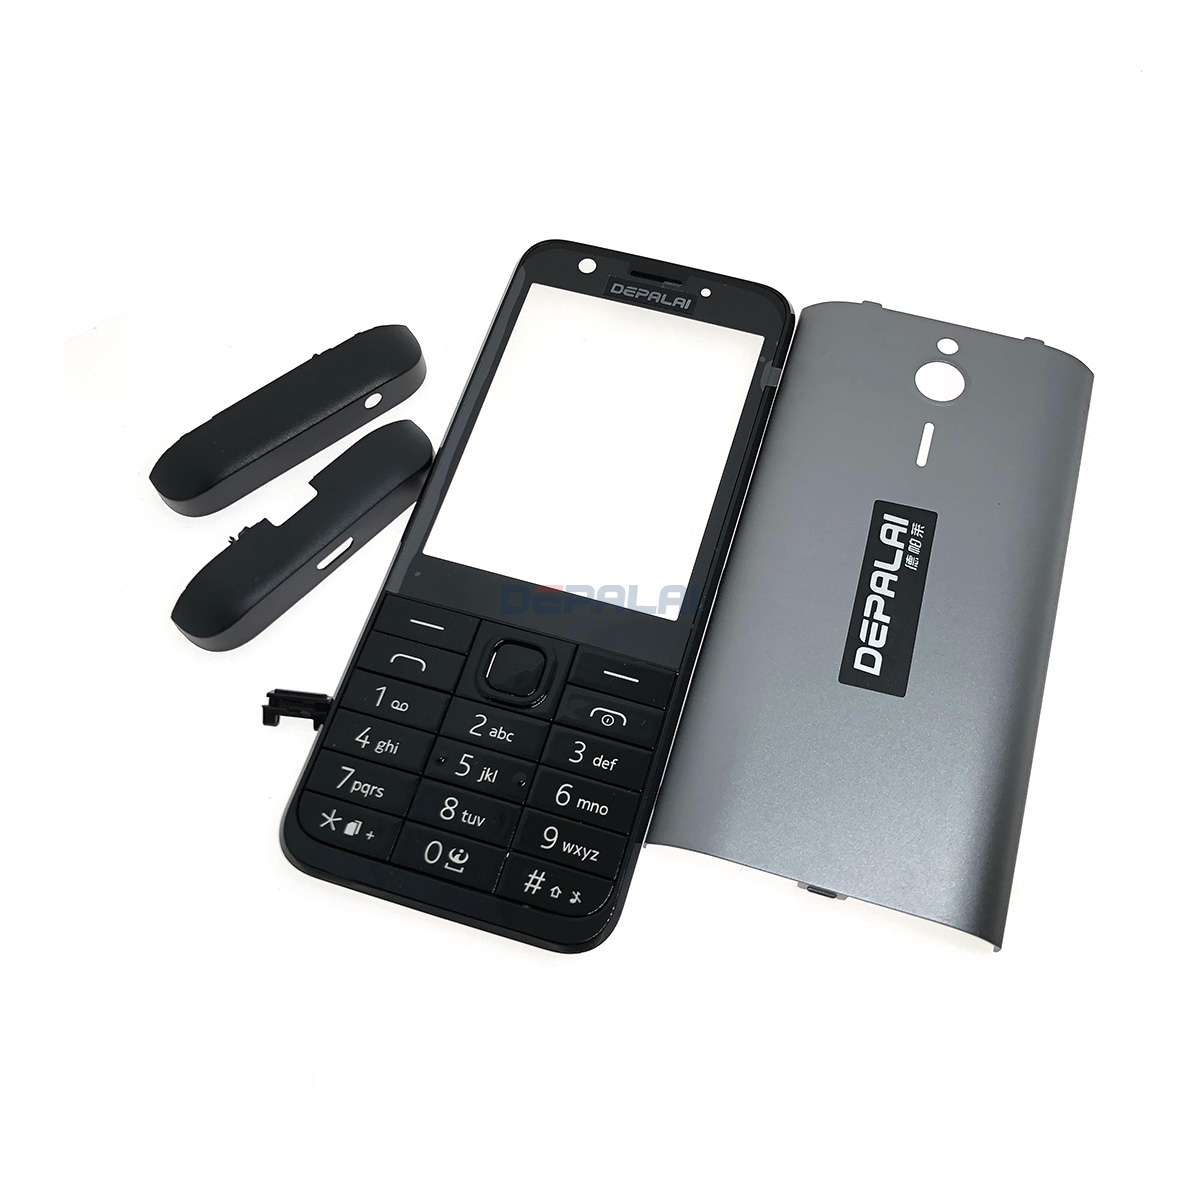 Front Middle Frame Back <font><b>cover</b></font> Battery <font><b>Cover</b></font> For <font><b>Nokia</b></font> <font><b>230</b></font> Full Housing <font><b>Cover</b></font> Case With English Keypad image